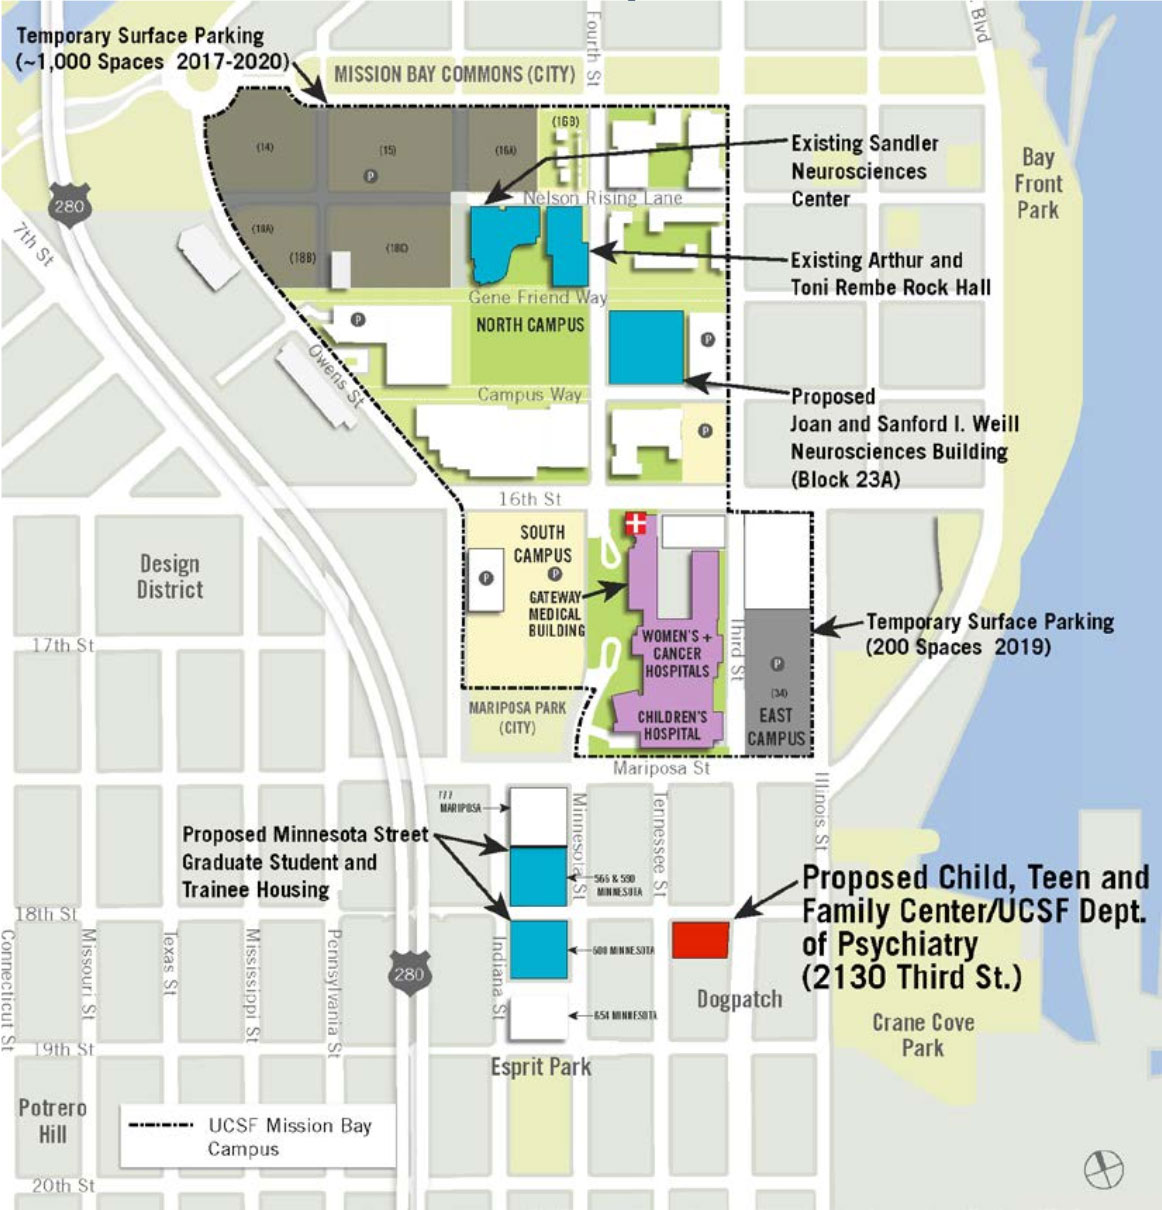 Mission Bay Campus Map.Uc Regents Approve Building Plans For 3 Projects In Mission Bay